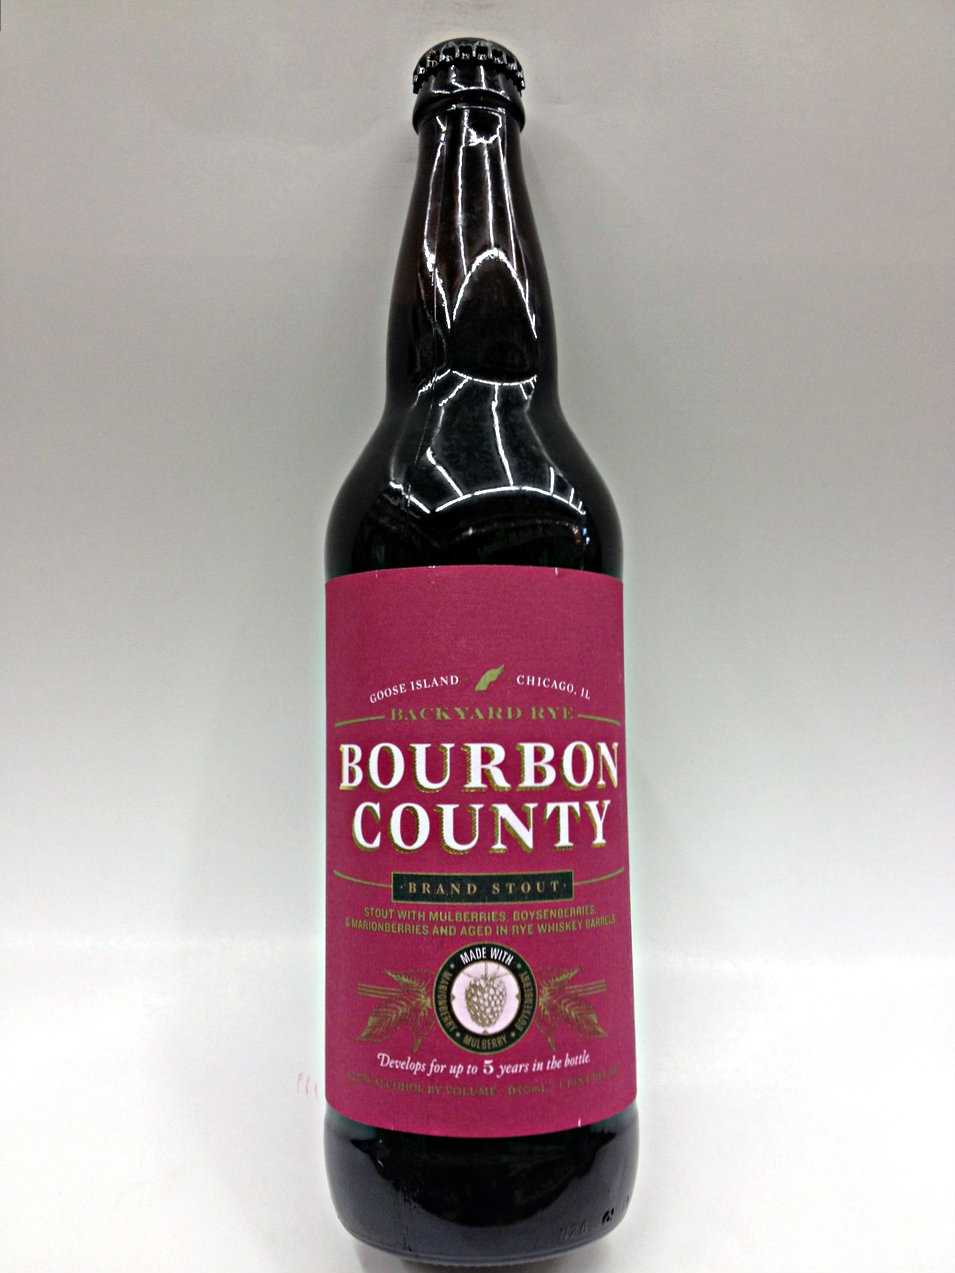 Bourbon County Backyard Rye goose island bourbon county stout backyard rye | quality liquor store